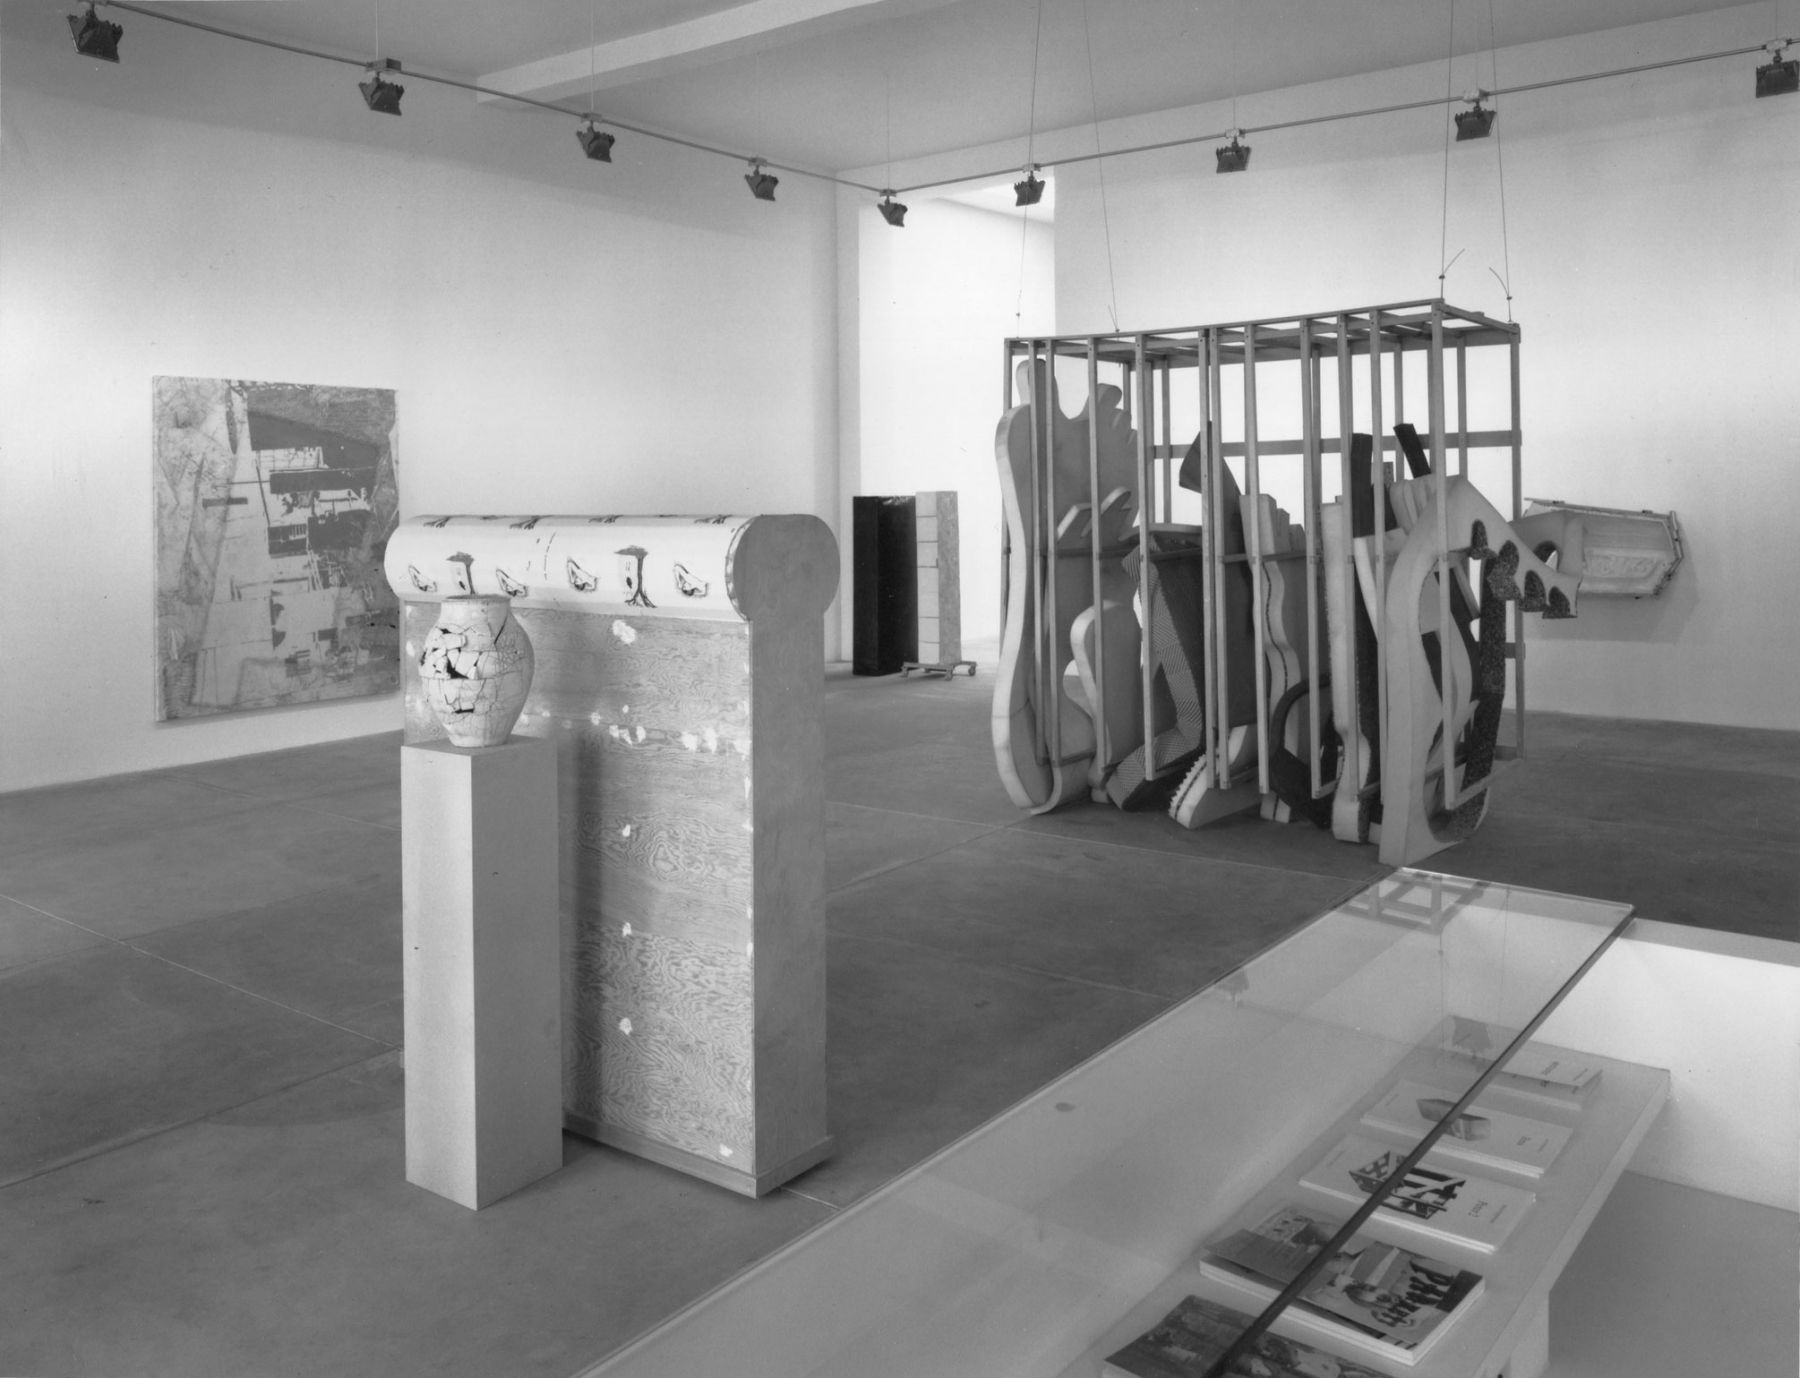 Martin Kippenberger, Installation view